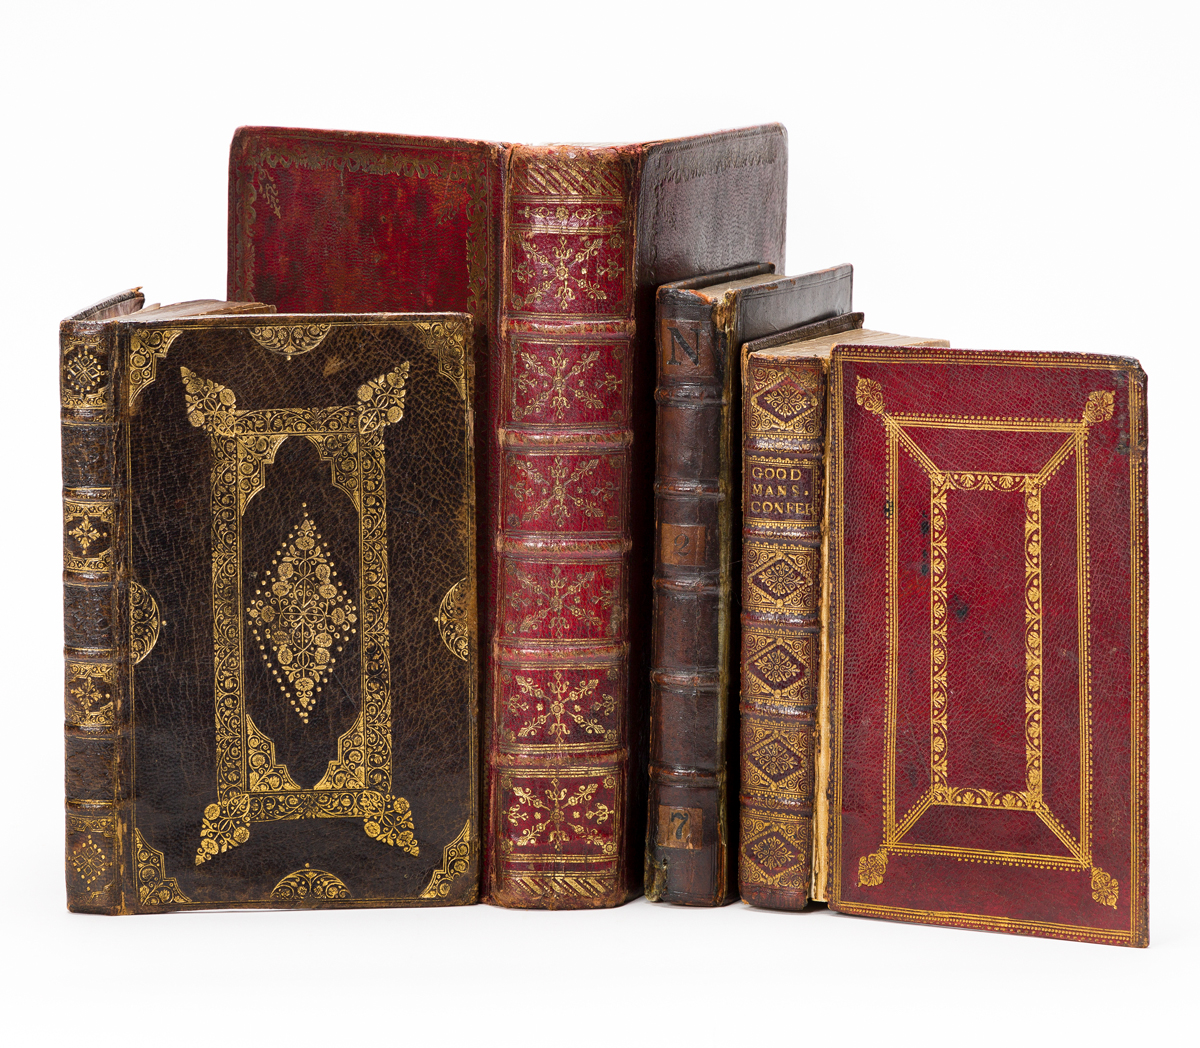 Early English Imprints in Fine Contemporary Bindings.